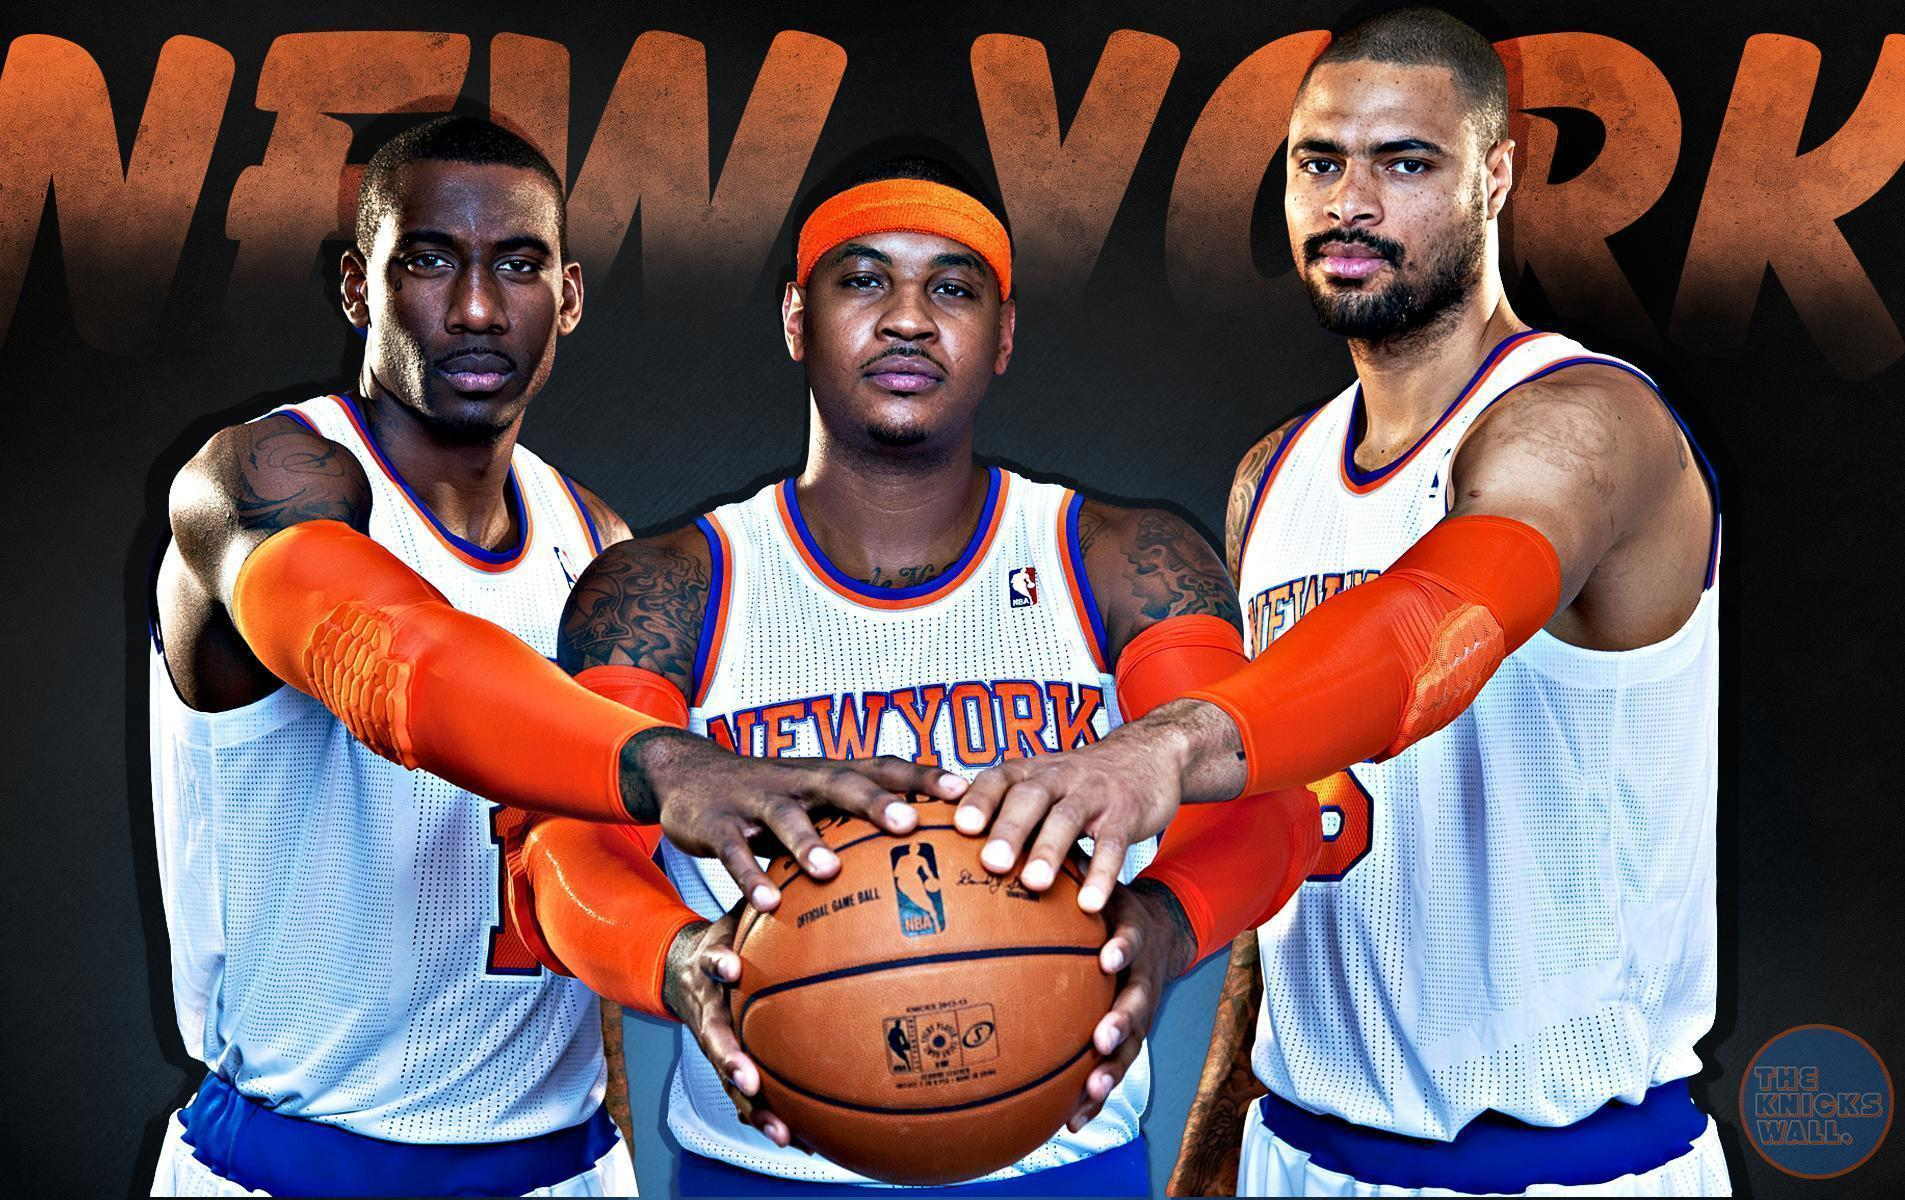 Carmelo Anthony, Amare Stoudemire and Tyson Chandler Wallpapers